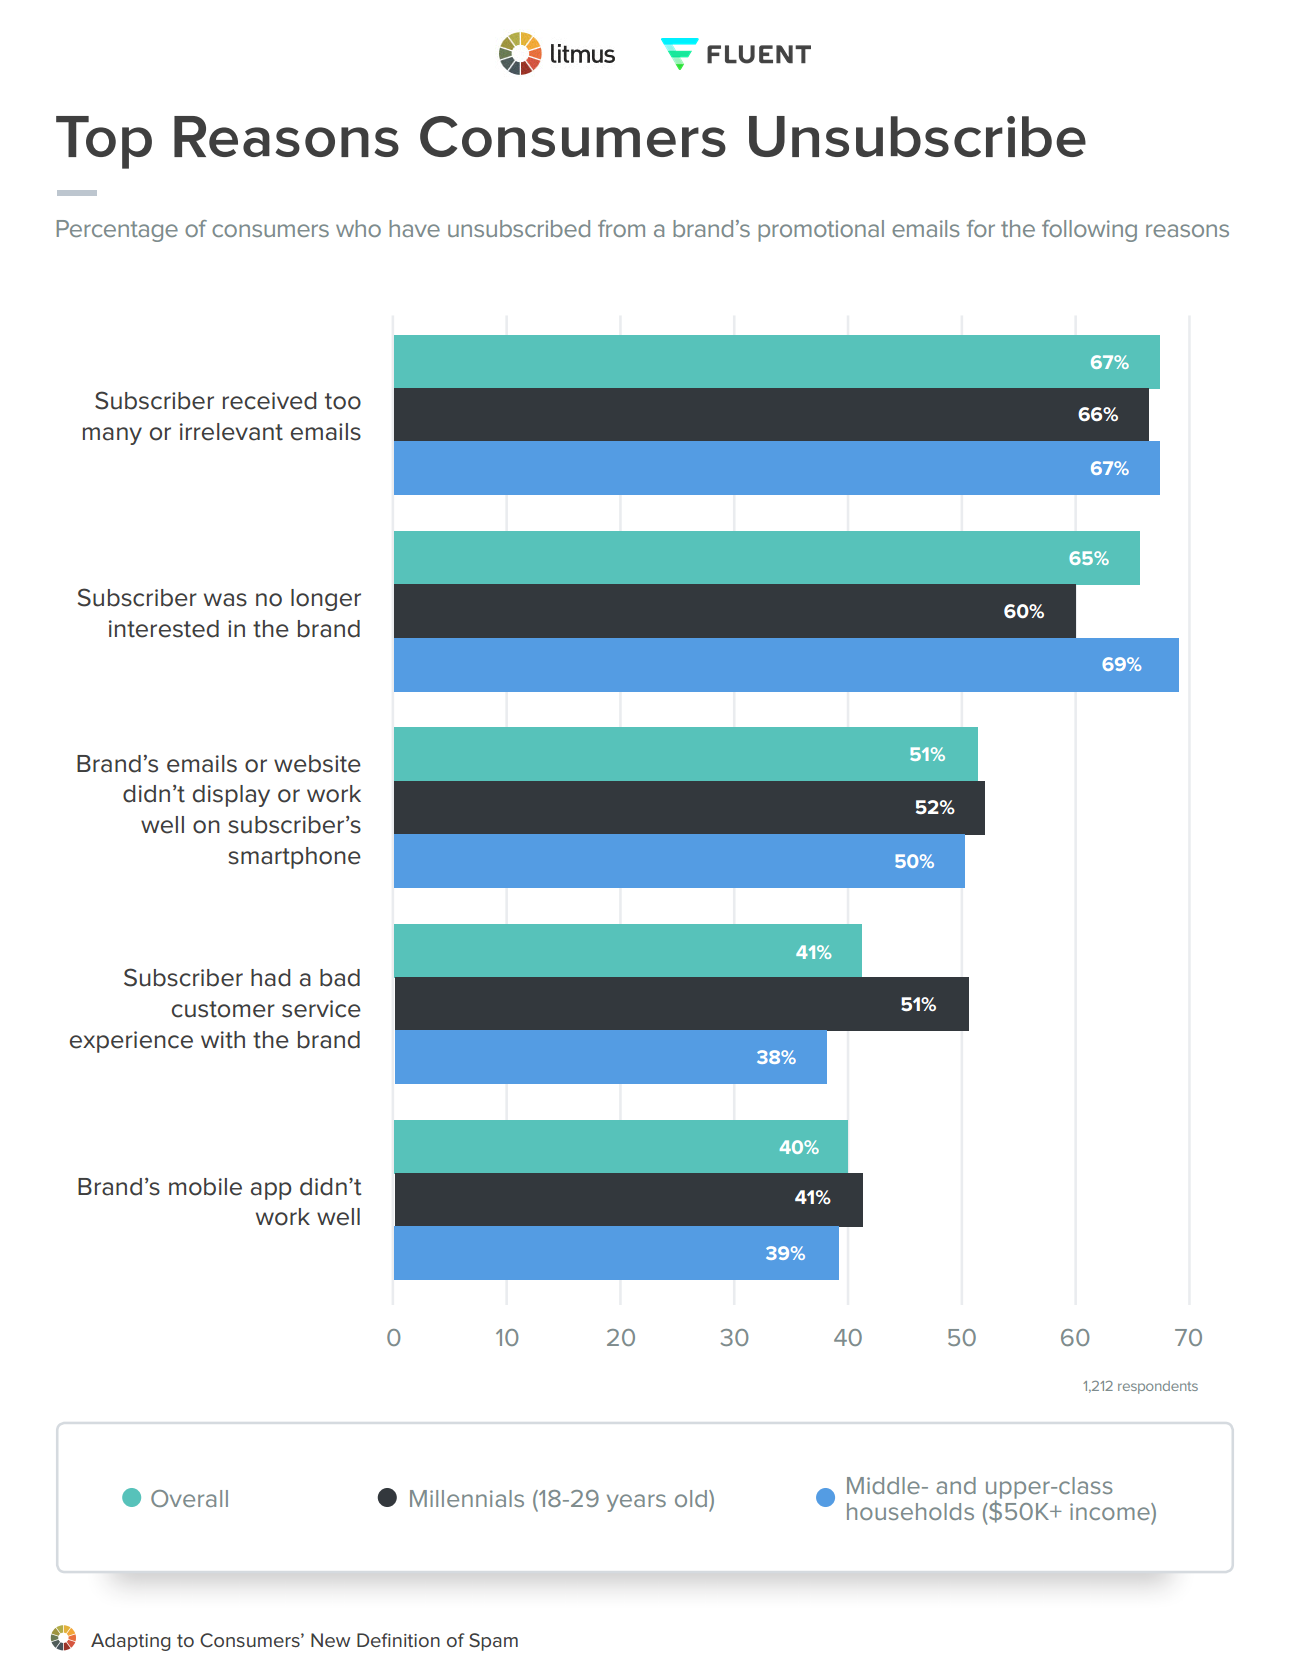 The Top Reasons Consumers Unsubscribe